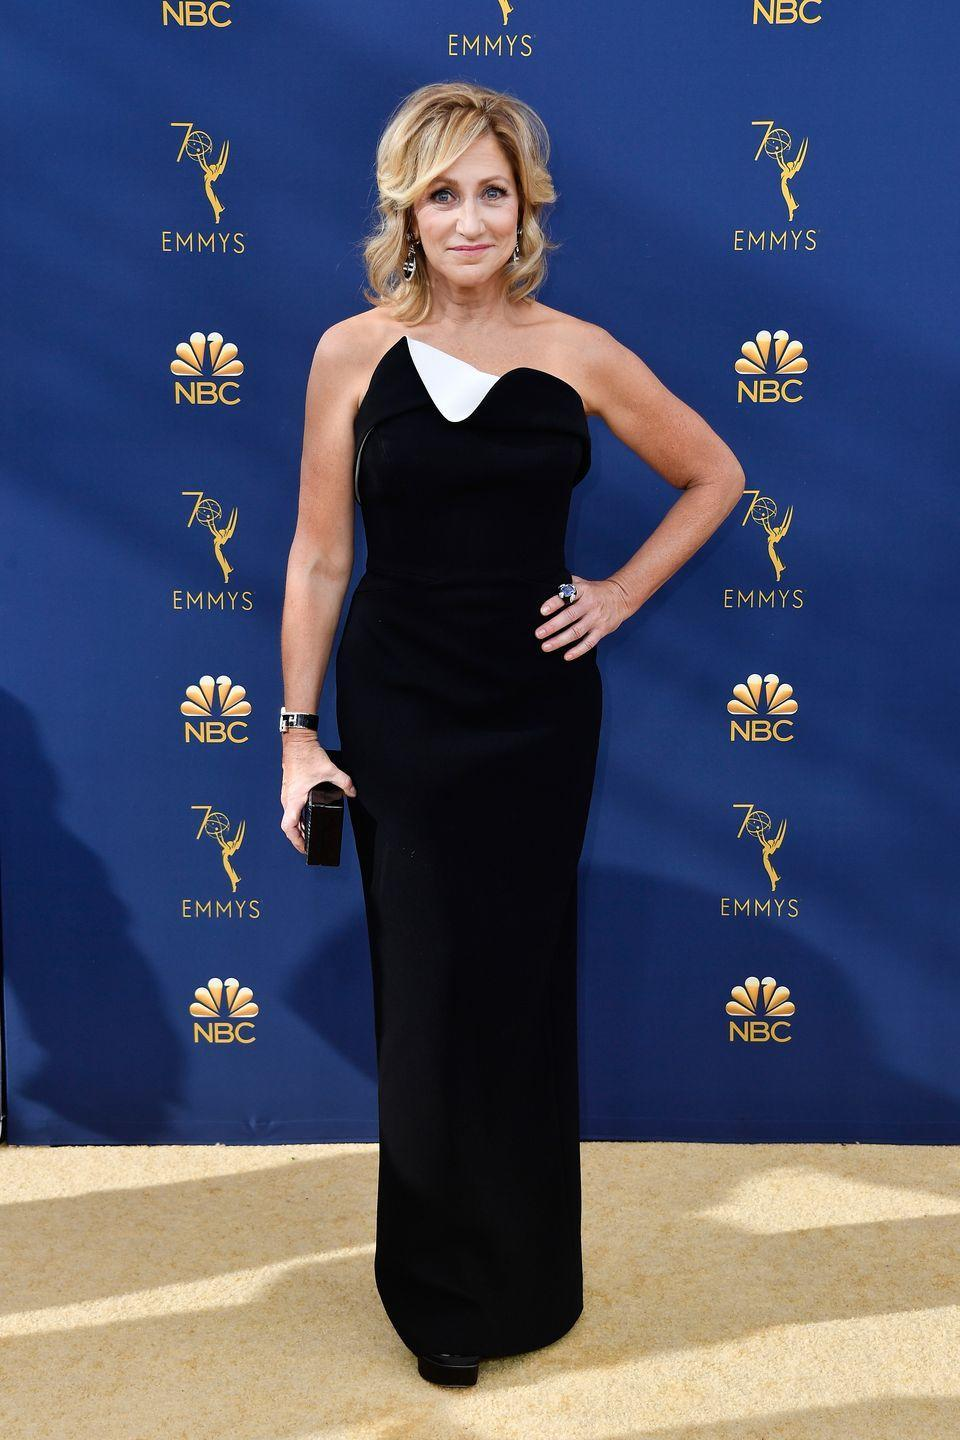 """<p>The actress kept her breast cancer diagnosis a secret while filming <em>The Sopranos</em>. She's now in remission, but in an interview with <a href=""""https://www.health.com/health/article/0,,20411264,00.html"""" rel=""""nofollow noopener"""" target=""""_blank"""" data-ylk=""""slk:Health"""" class=""""link rapid-noclick-resp""""><em>Health</em></a>, she opened up about the challenges that remain. """"When the cancer went into remission, I was relieved, of course, but it was also strangely depressing...it occurs to you you're really on your own, and its a bit nerve-racking,"""" she said. </p>"""